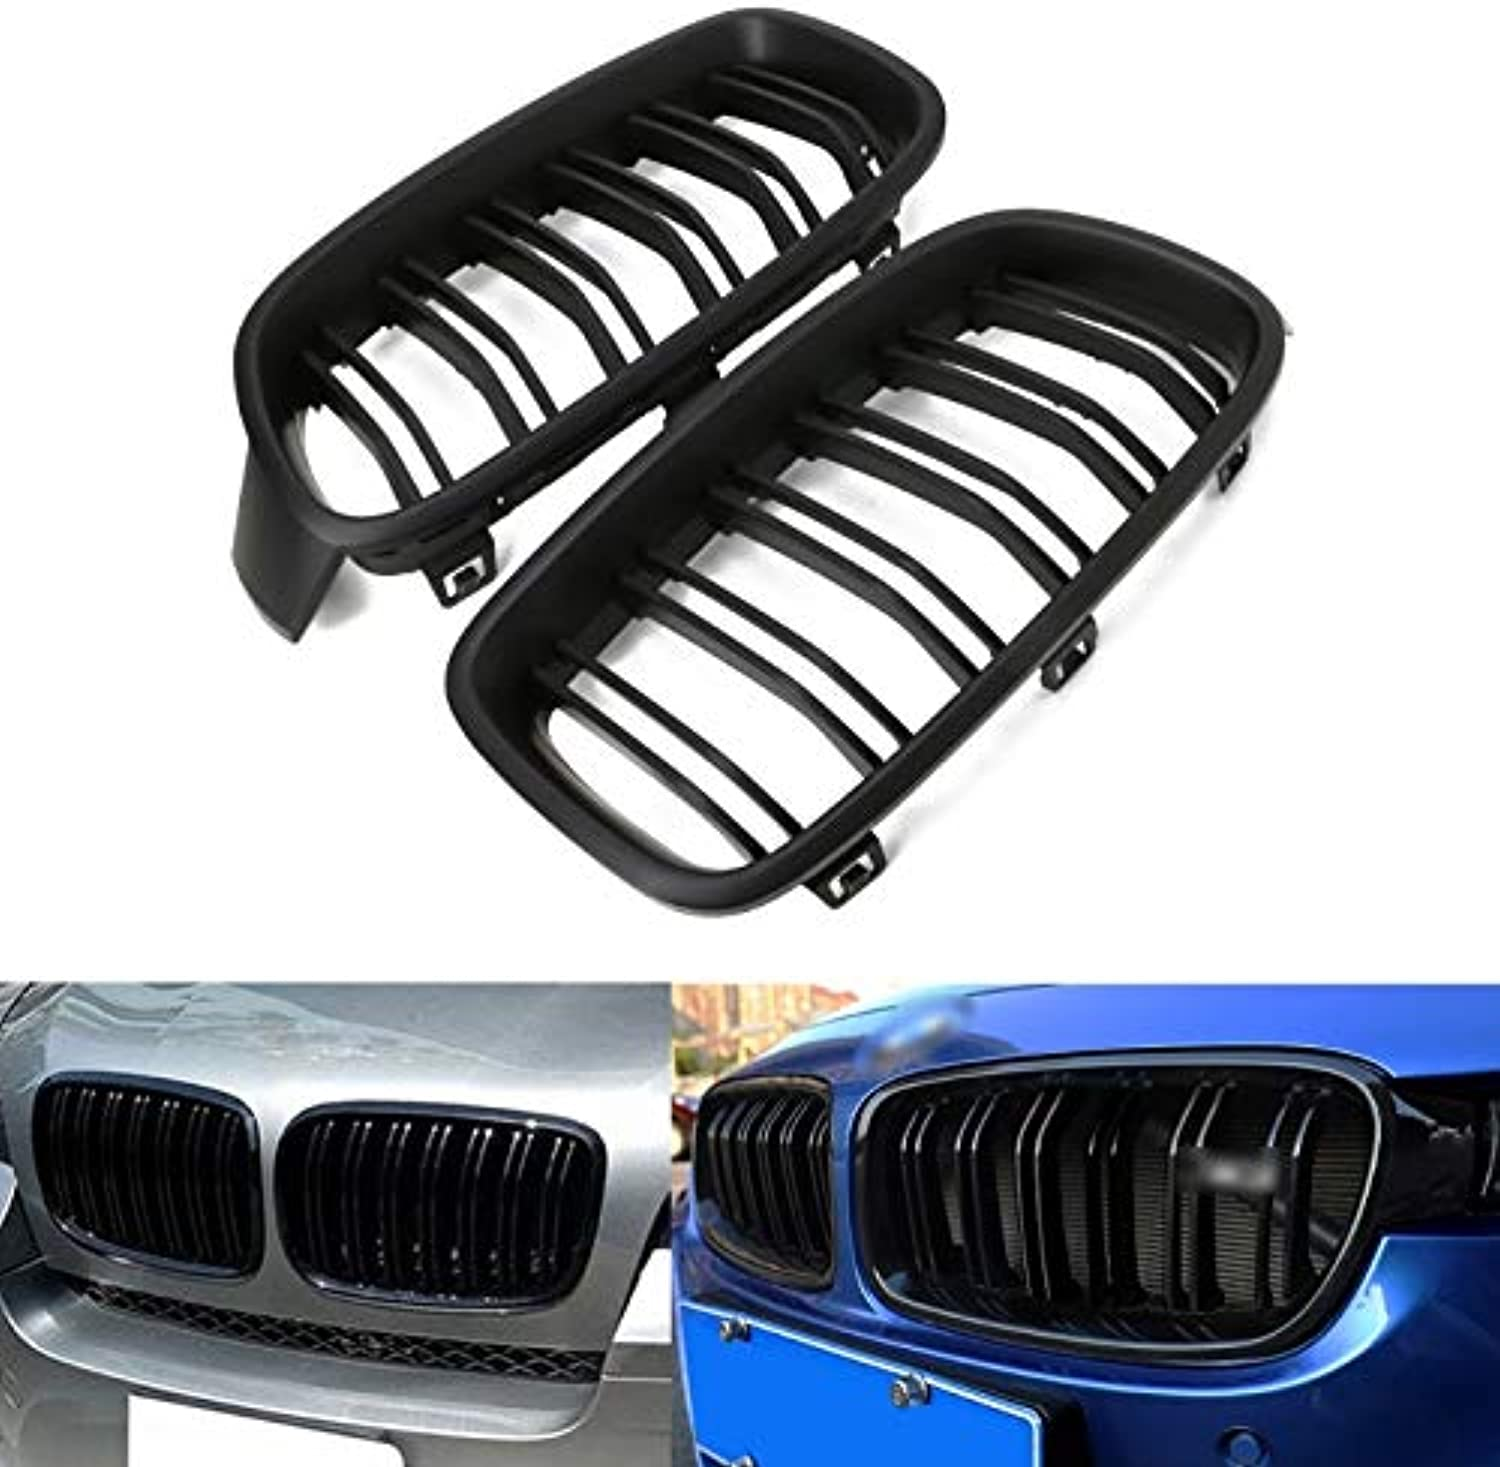 1Pair Matte Black Front Grille Kidney for BMW 3-Series F30 F31 F35 2012-2016 New